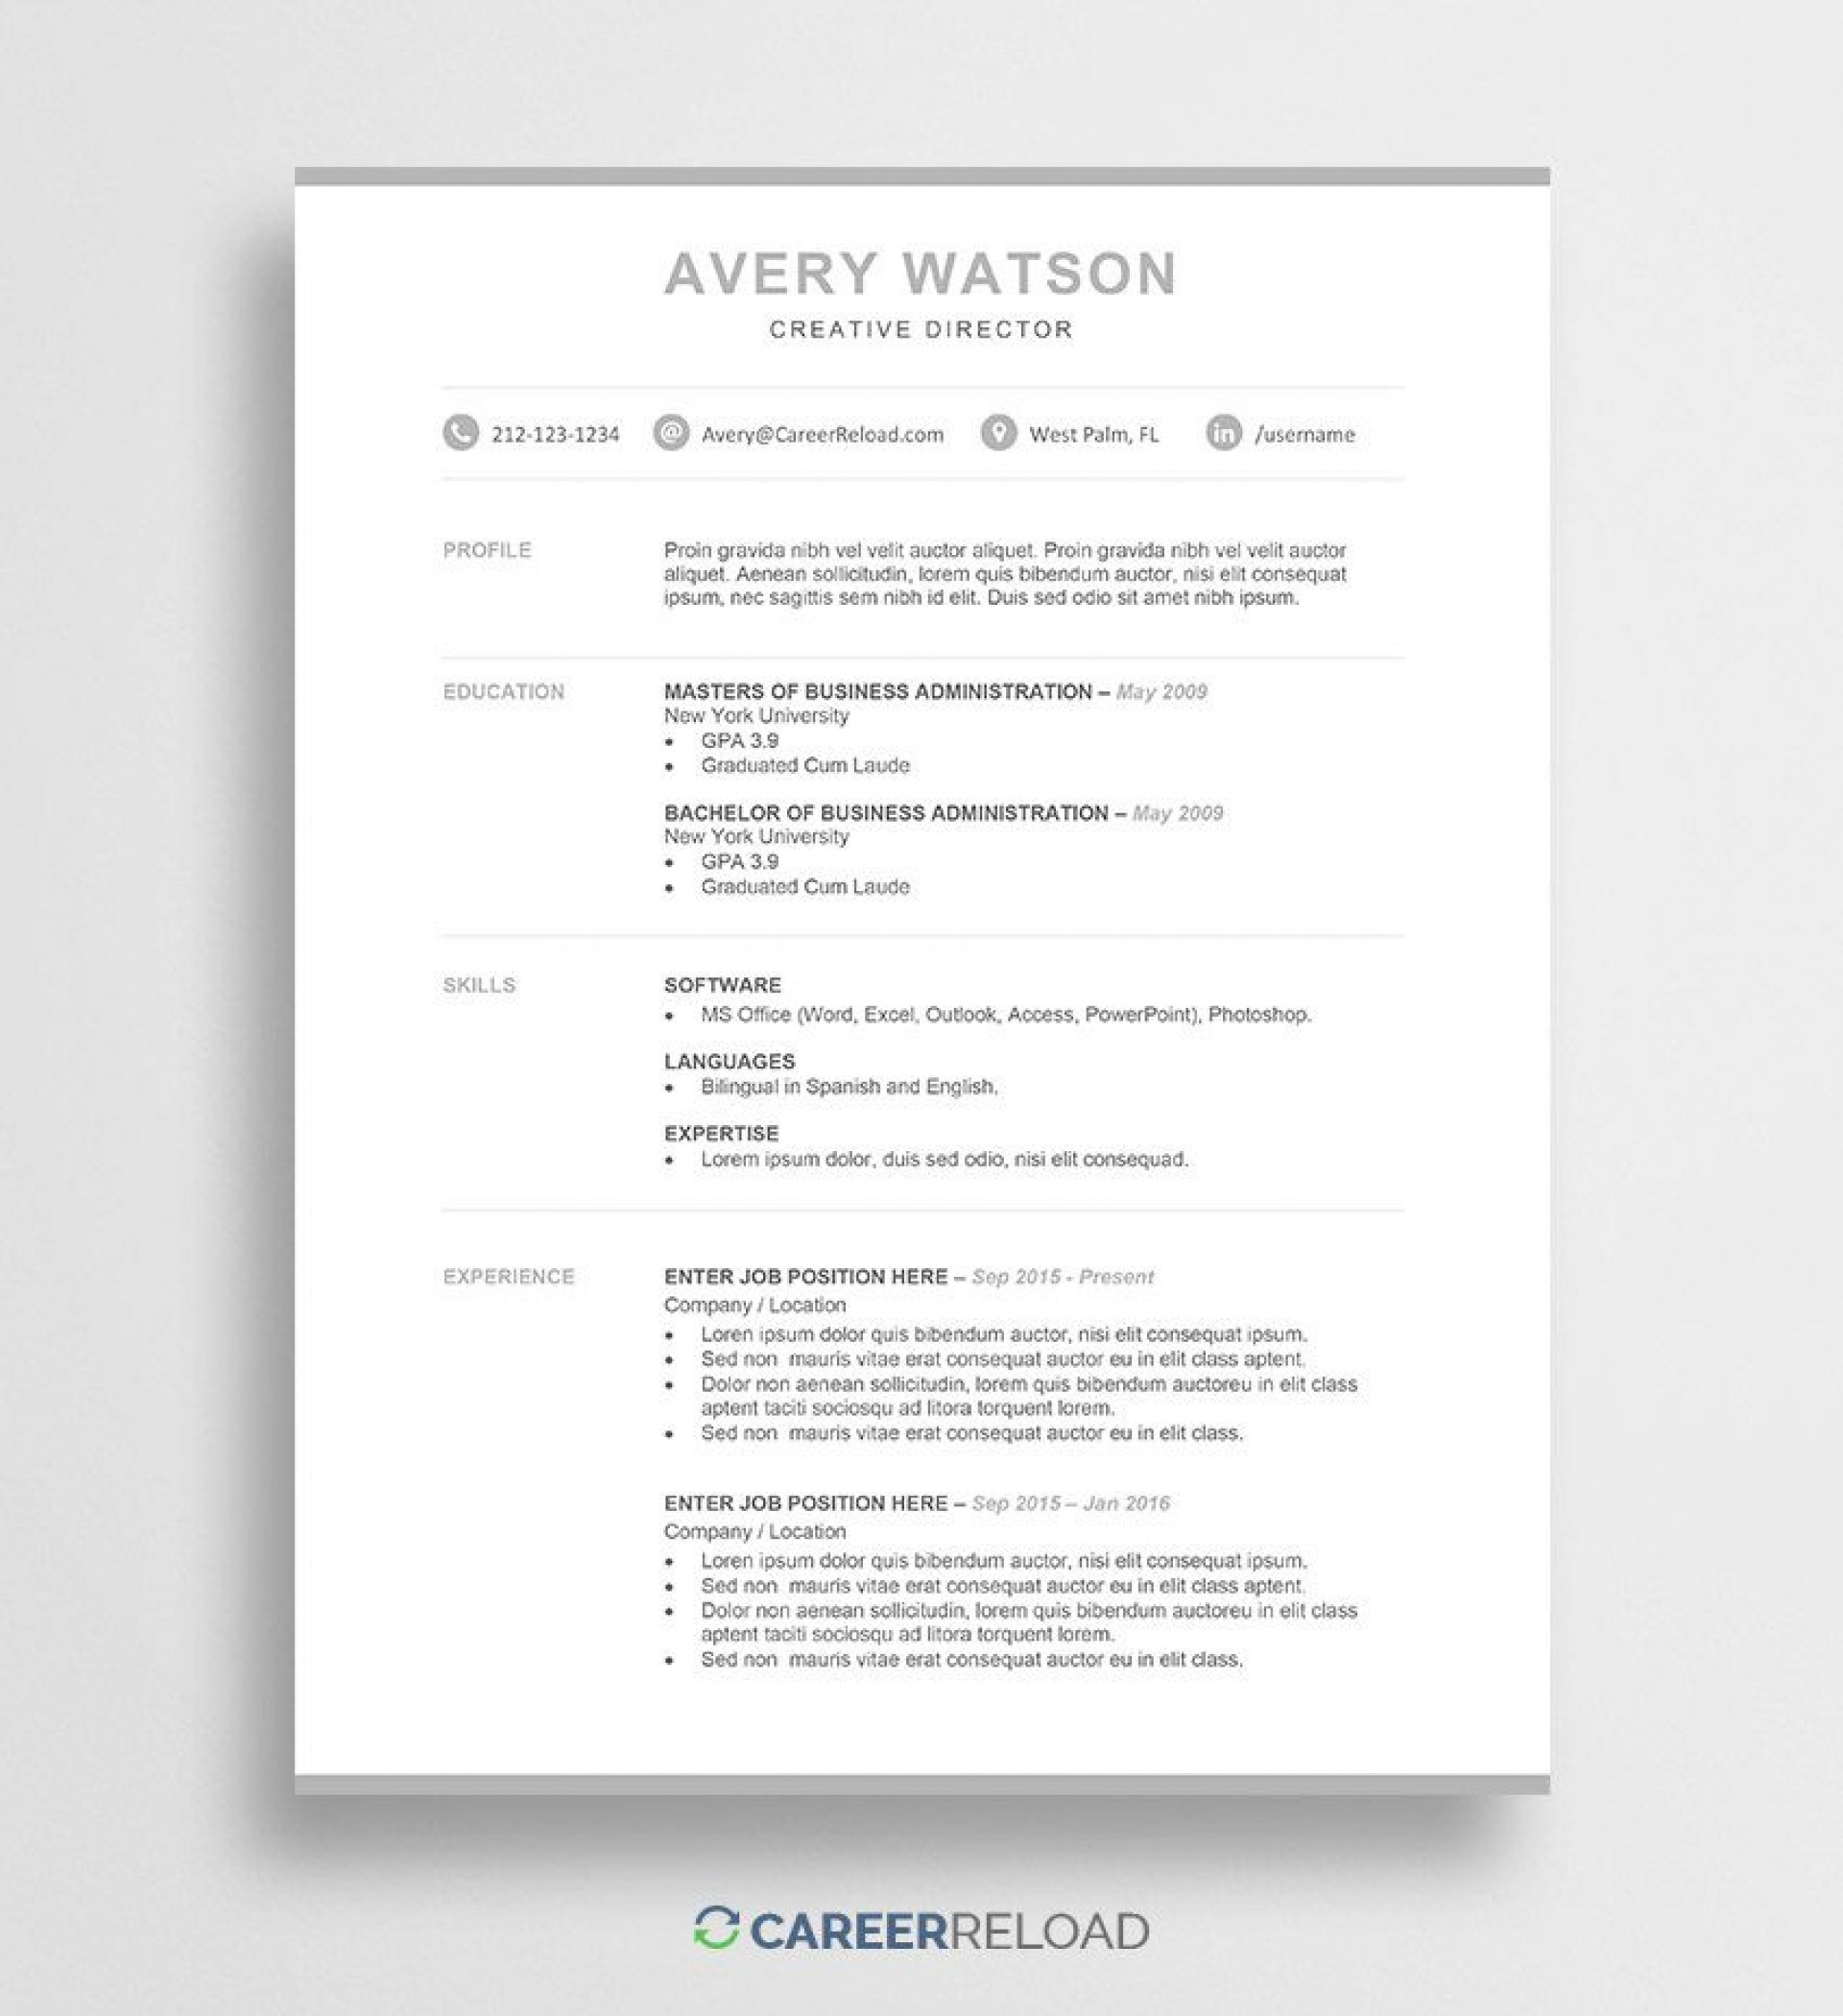 005 Fantastic Entry Level Resume Template Word Highest Clarity  Free For1920